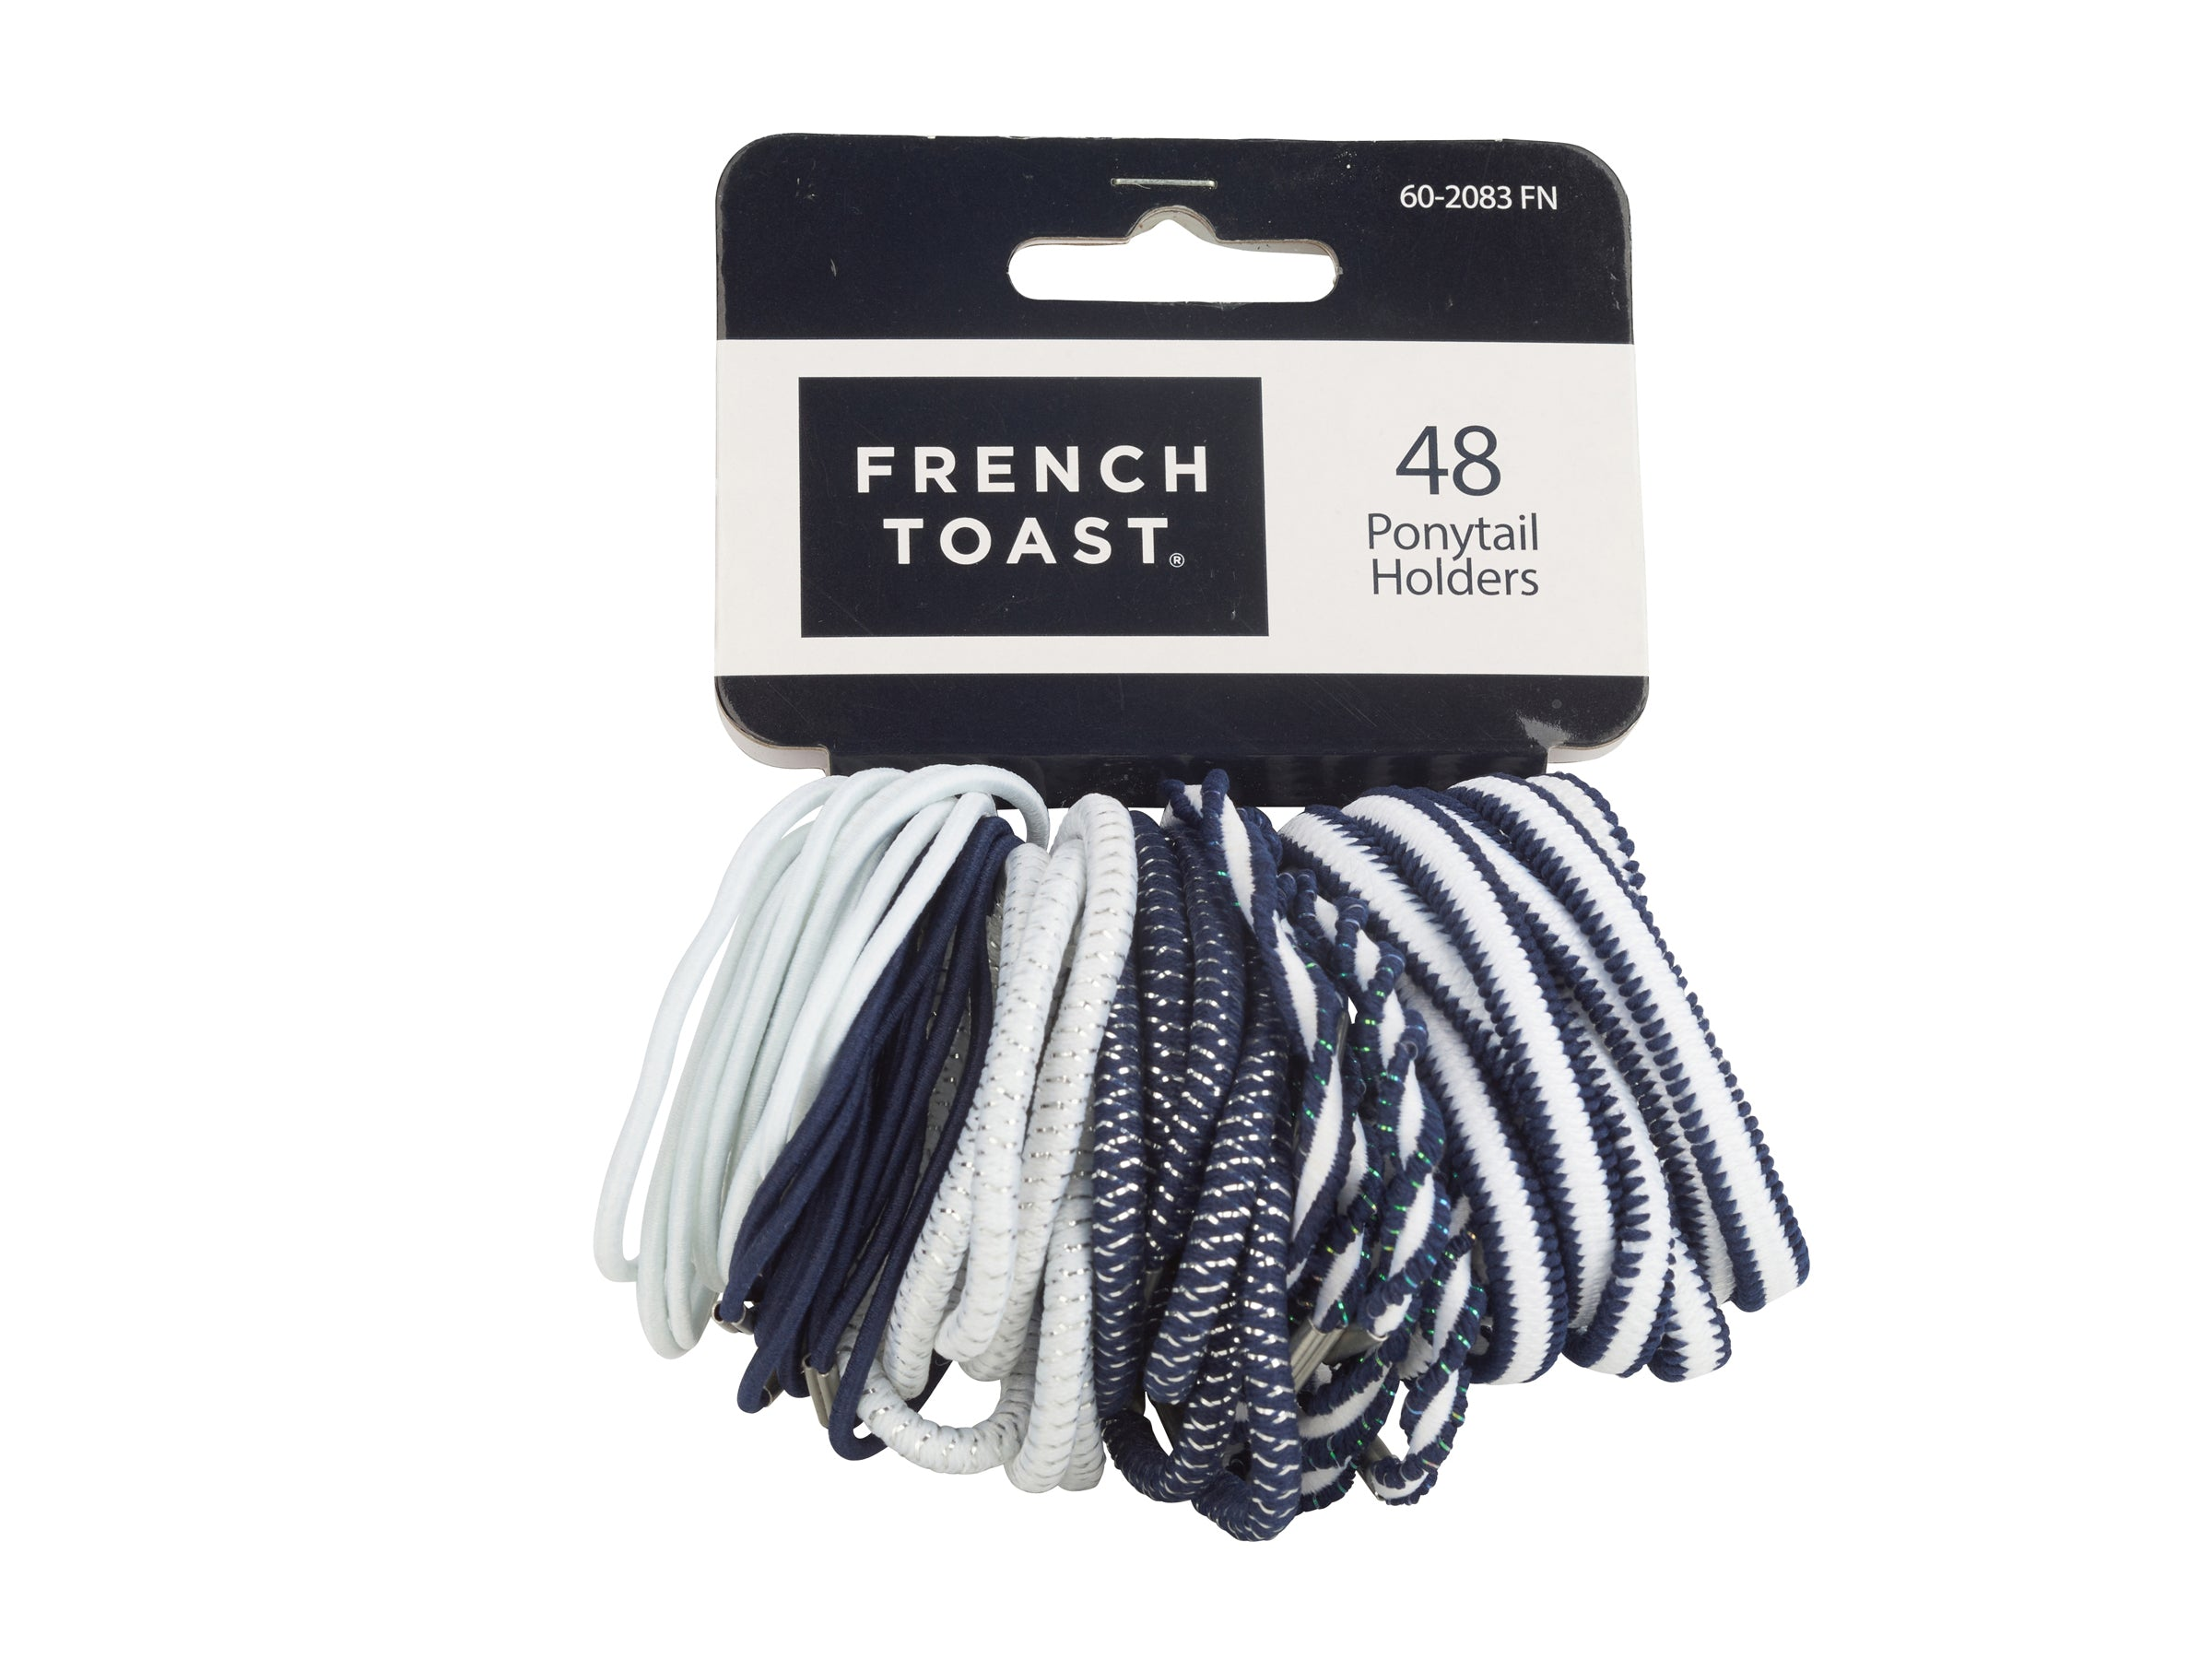 French Toast Ponytail Holders, 48-pack